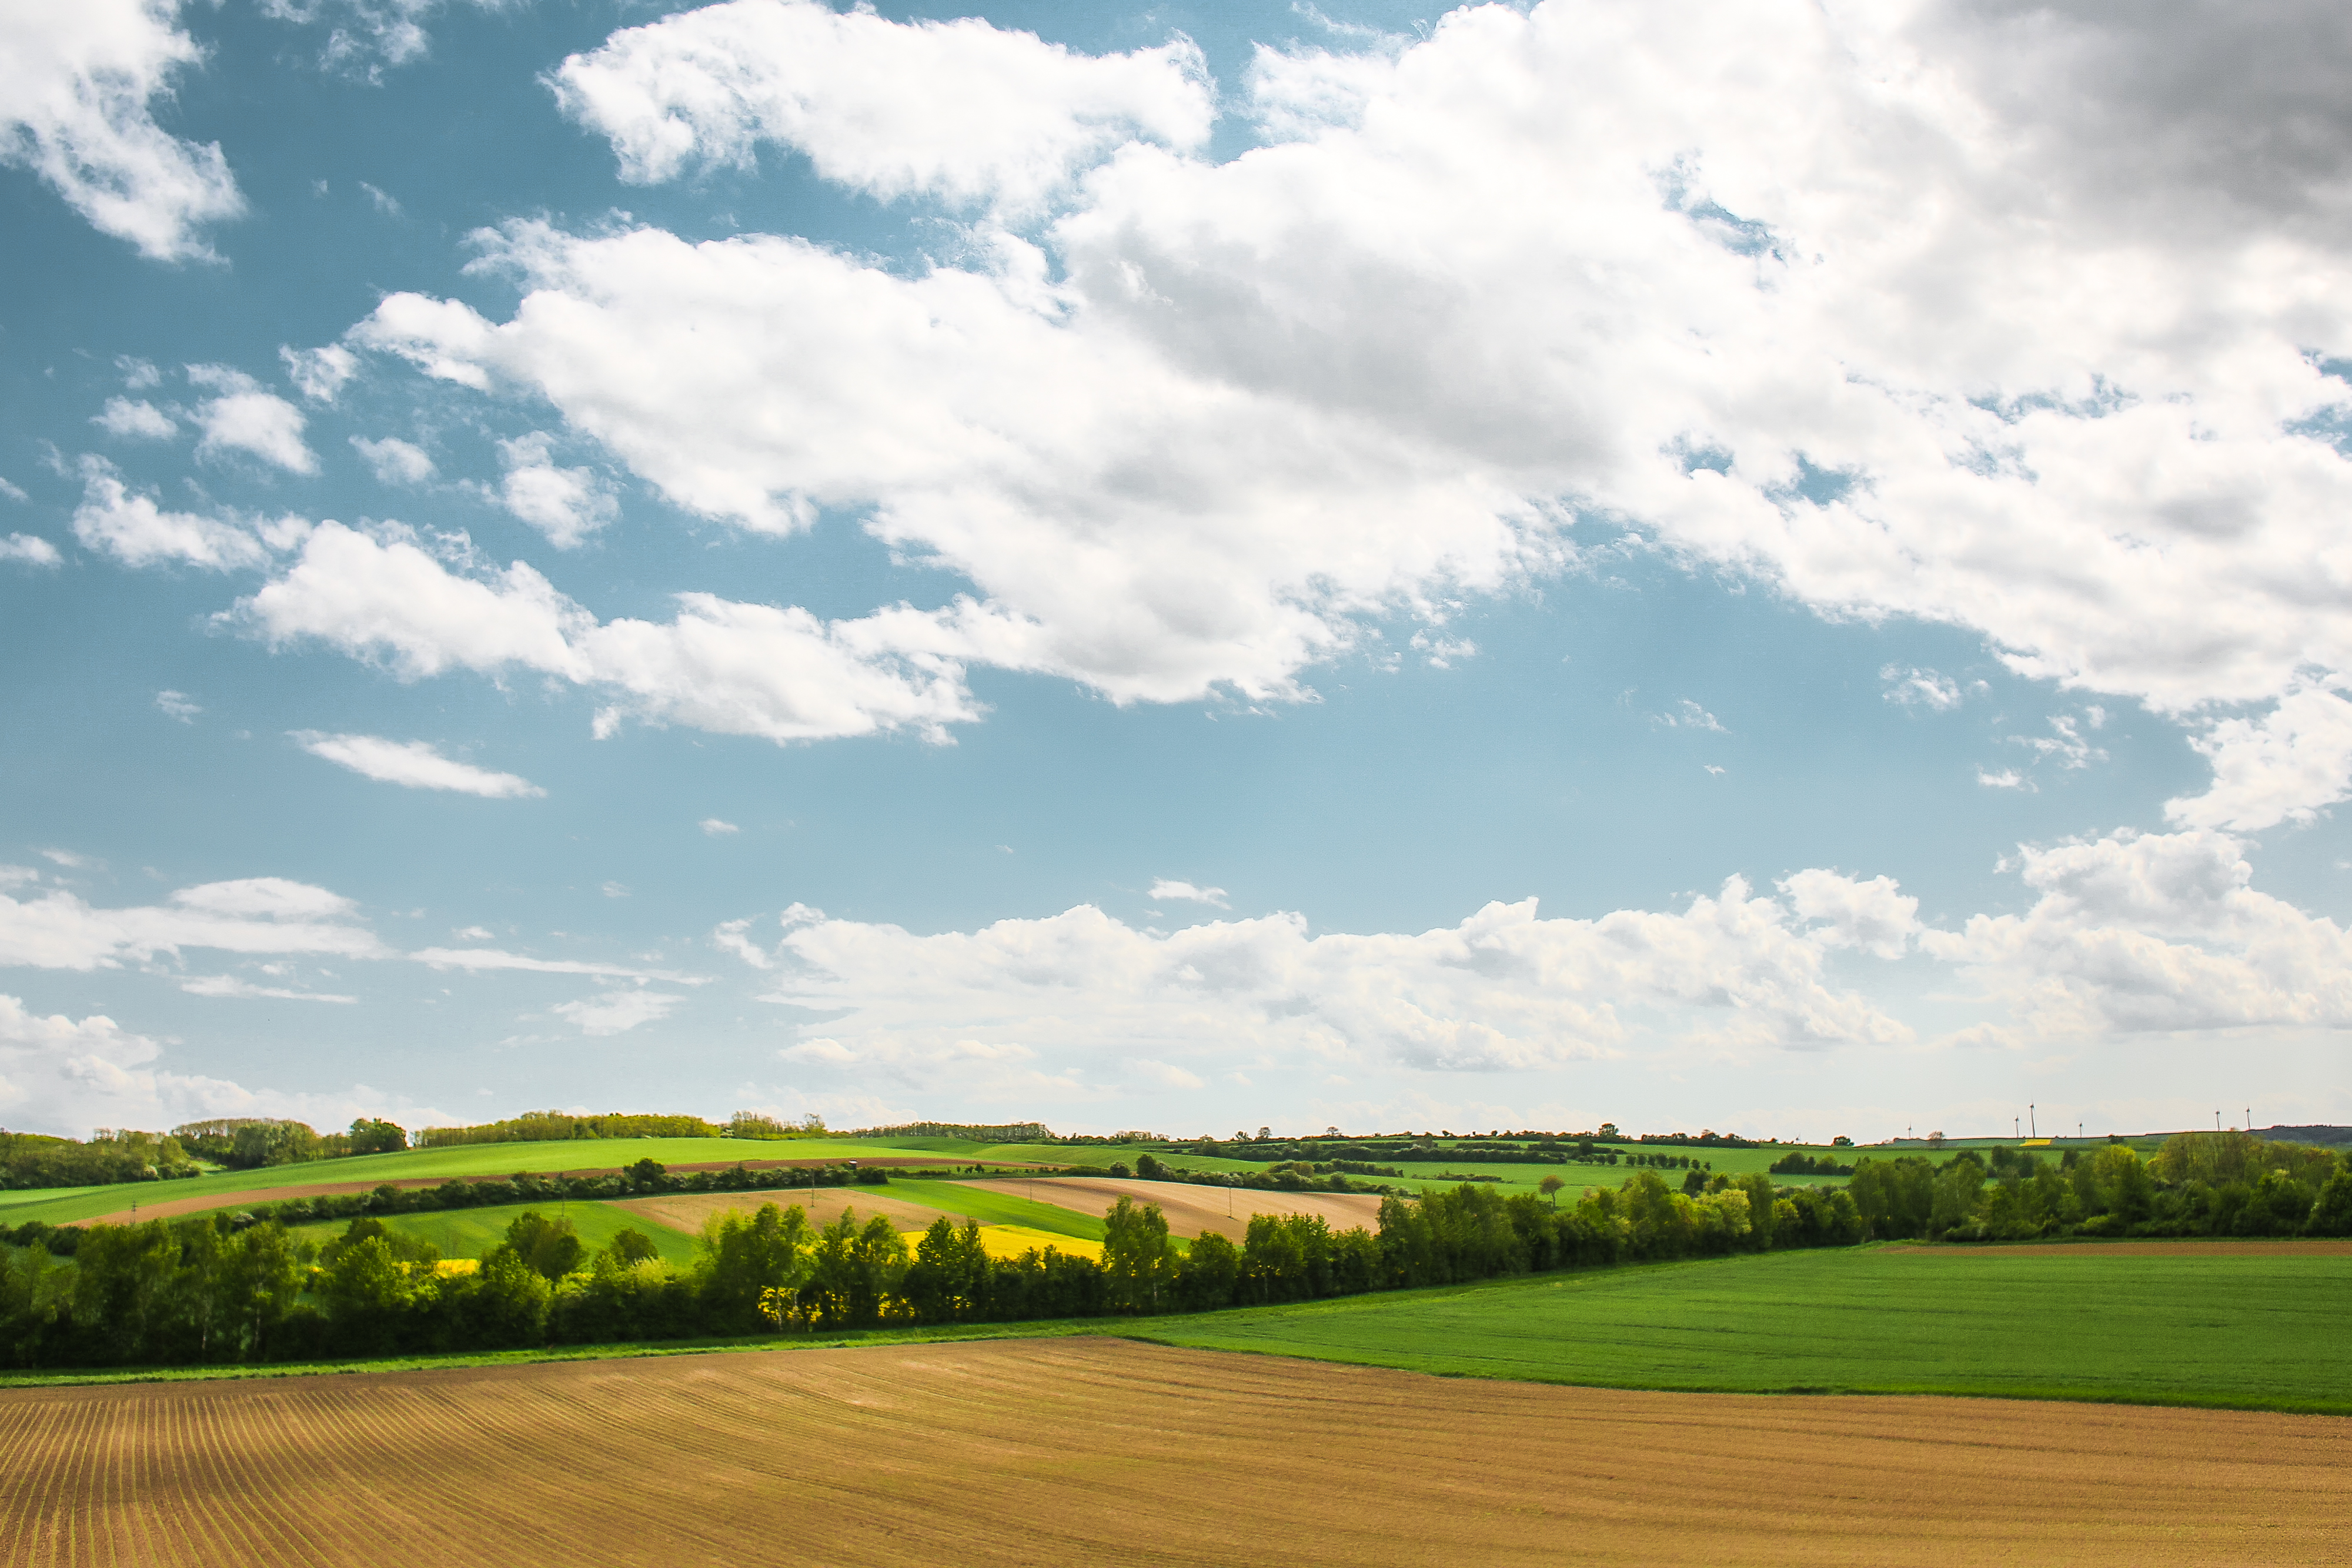 Download Another Scenery with Fields FREE Stock Photo